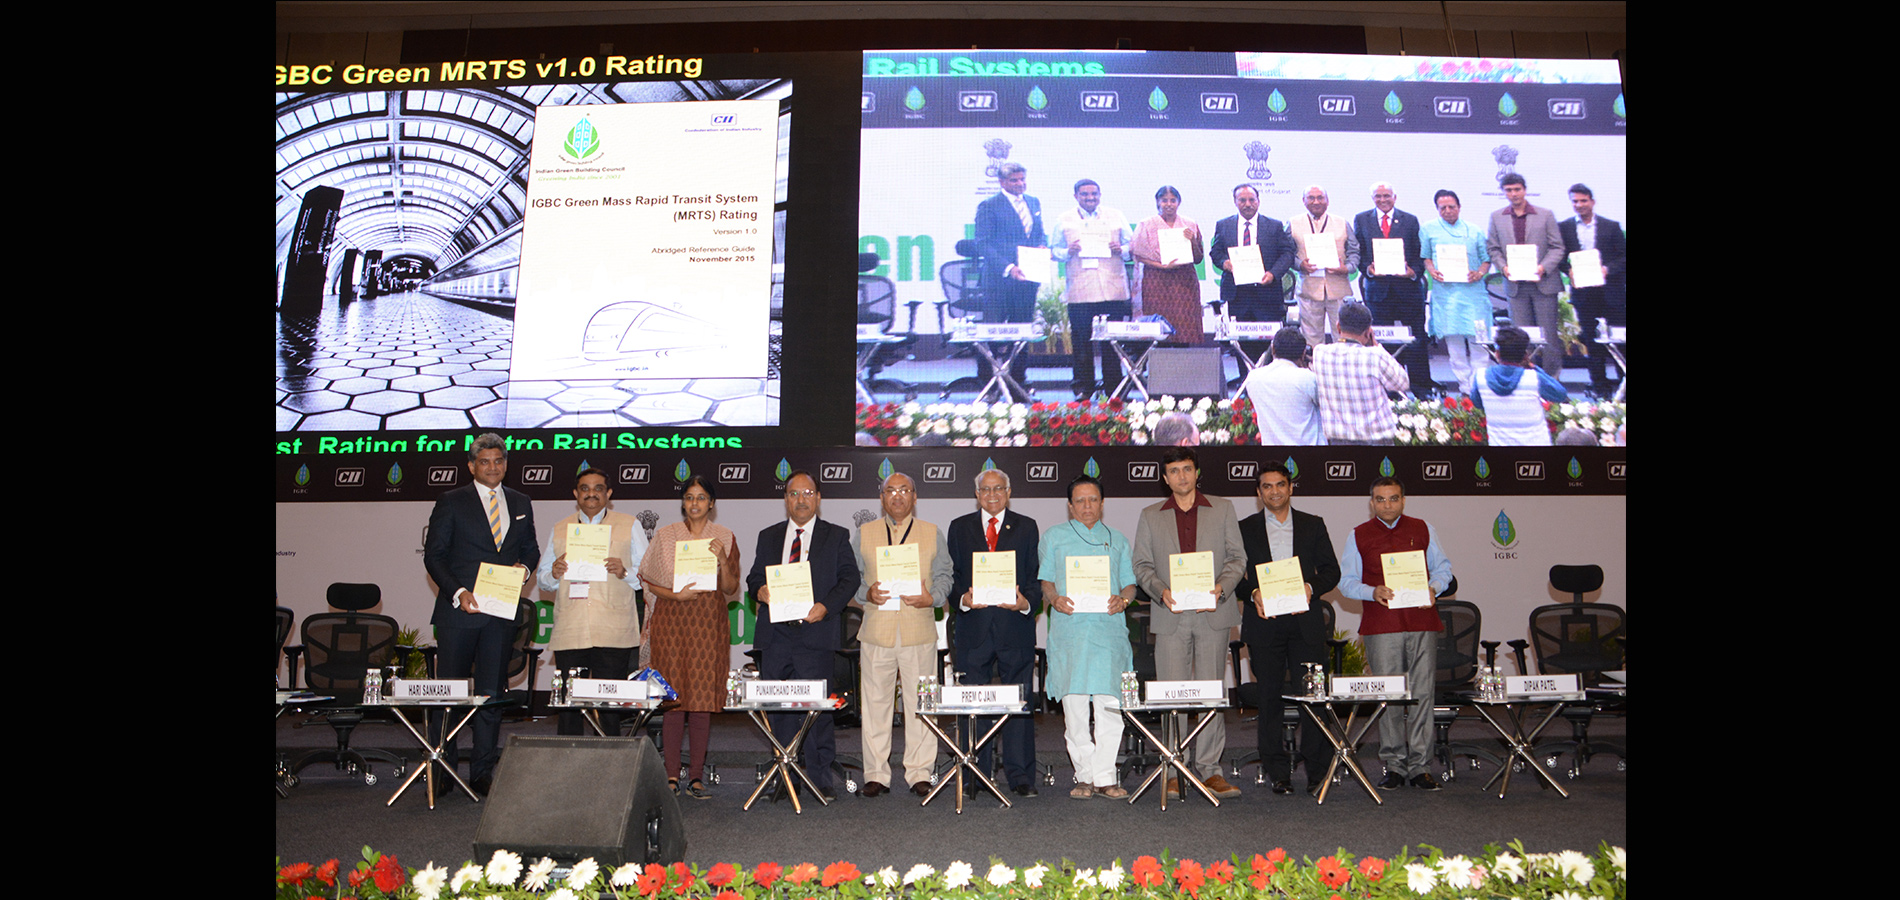 IGBC Green Cities Rating-Pilot Version launched